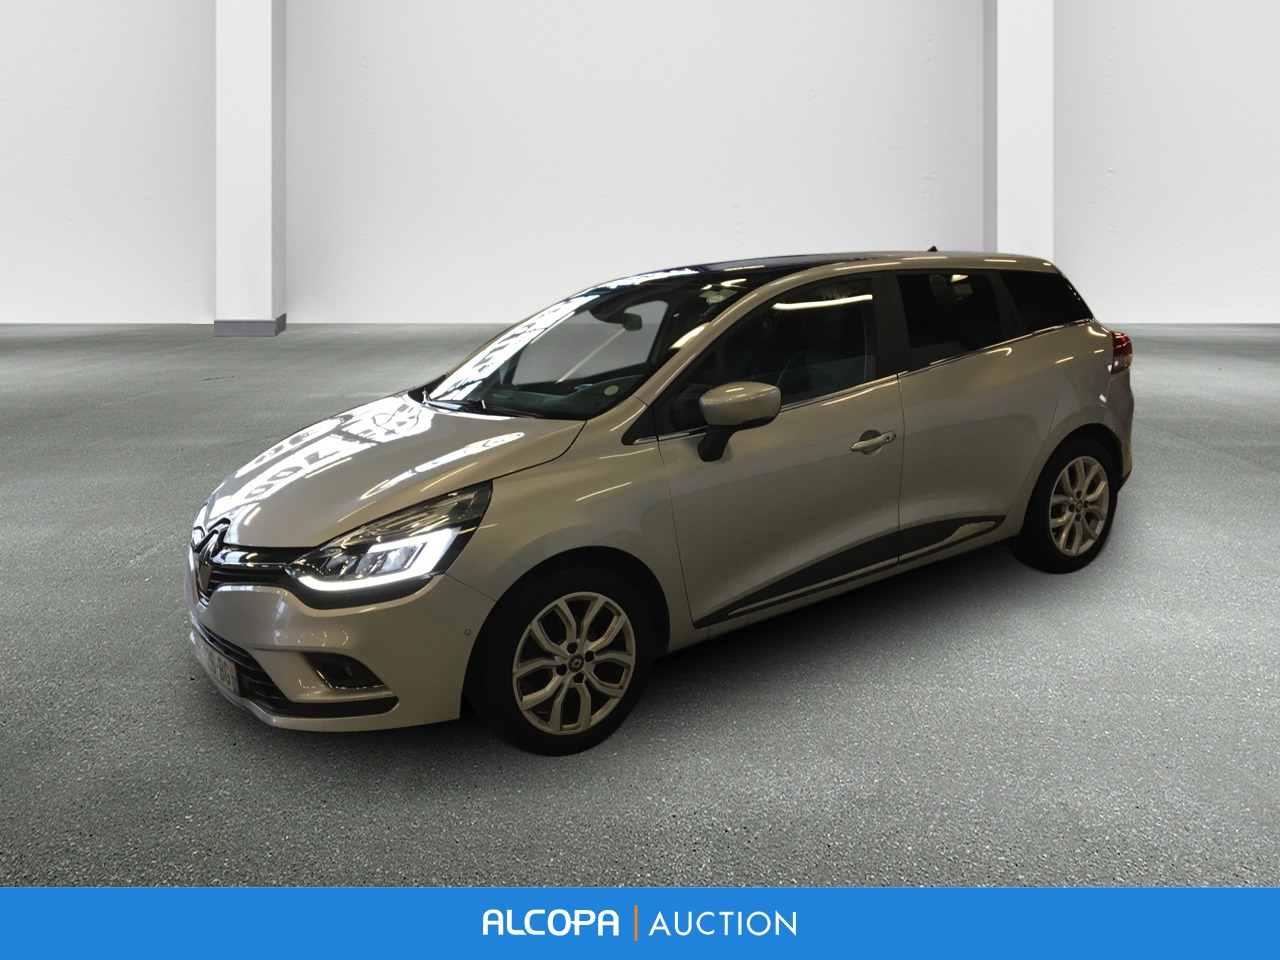 renault clio iv estate clio estate tce 120 energy edc intens alcopa auction. Black Bedroom Furniture Sets. Home Design Ideas